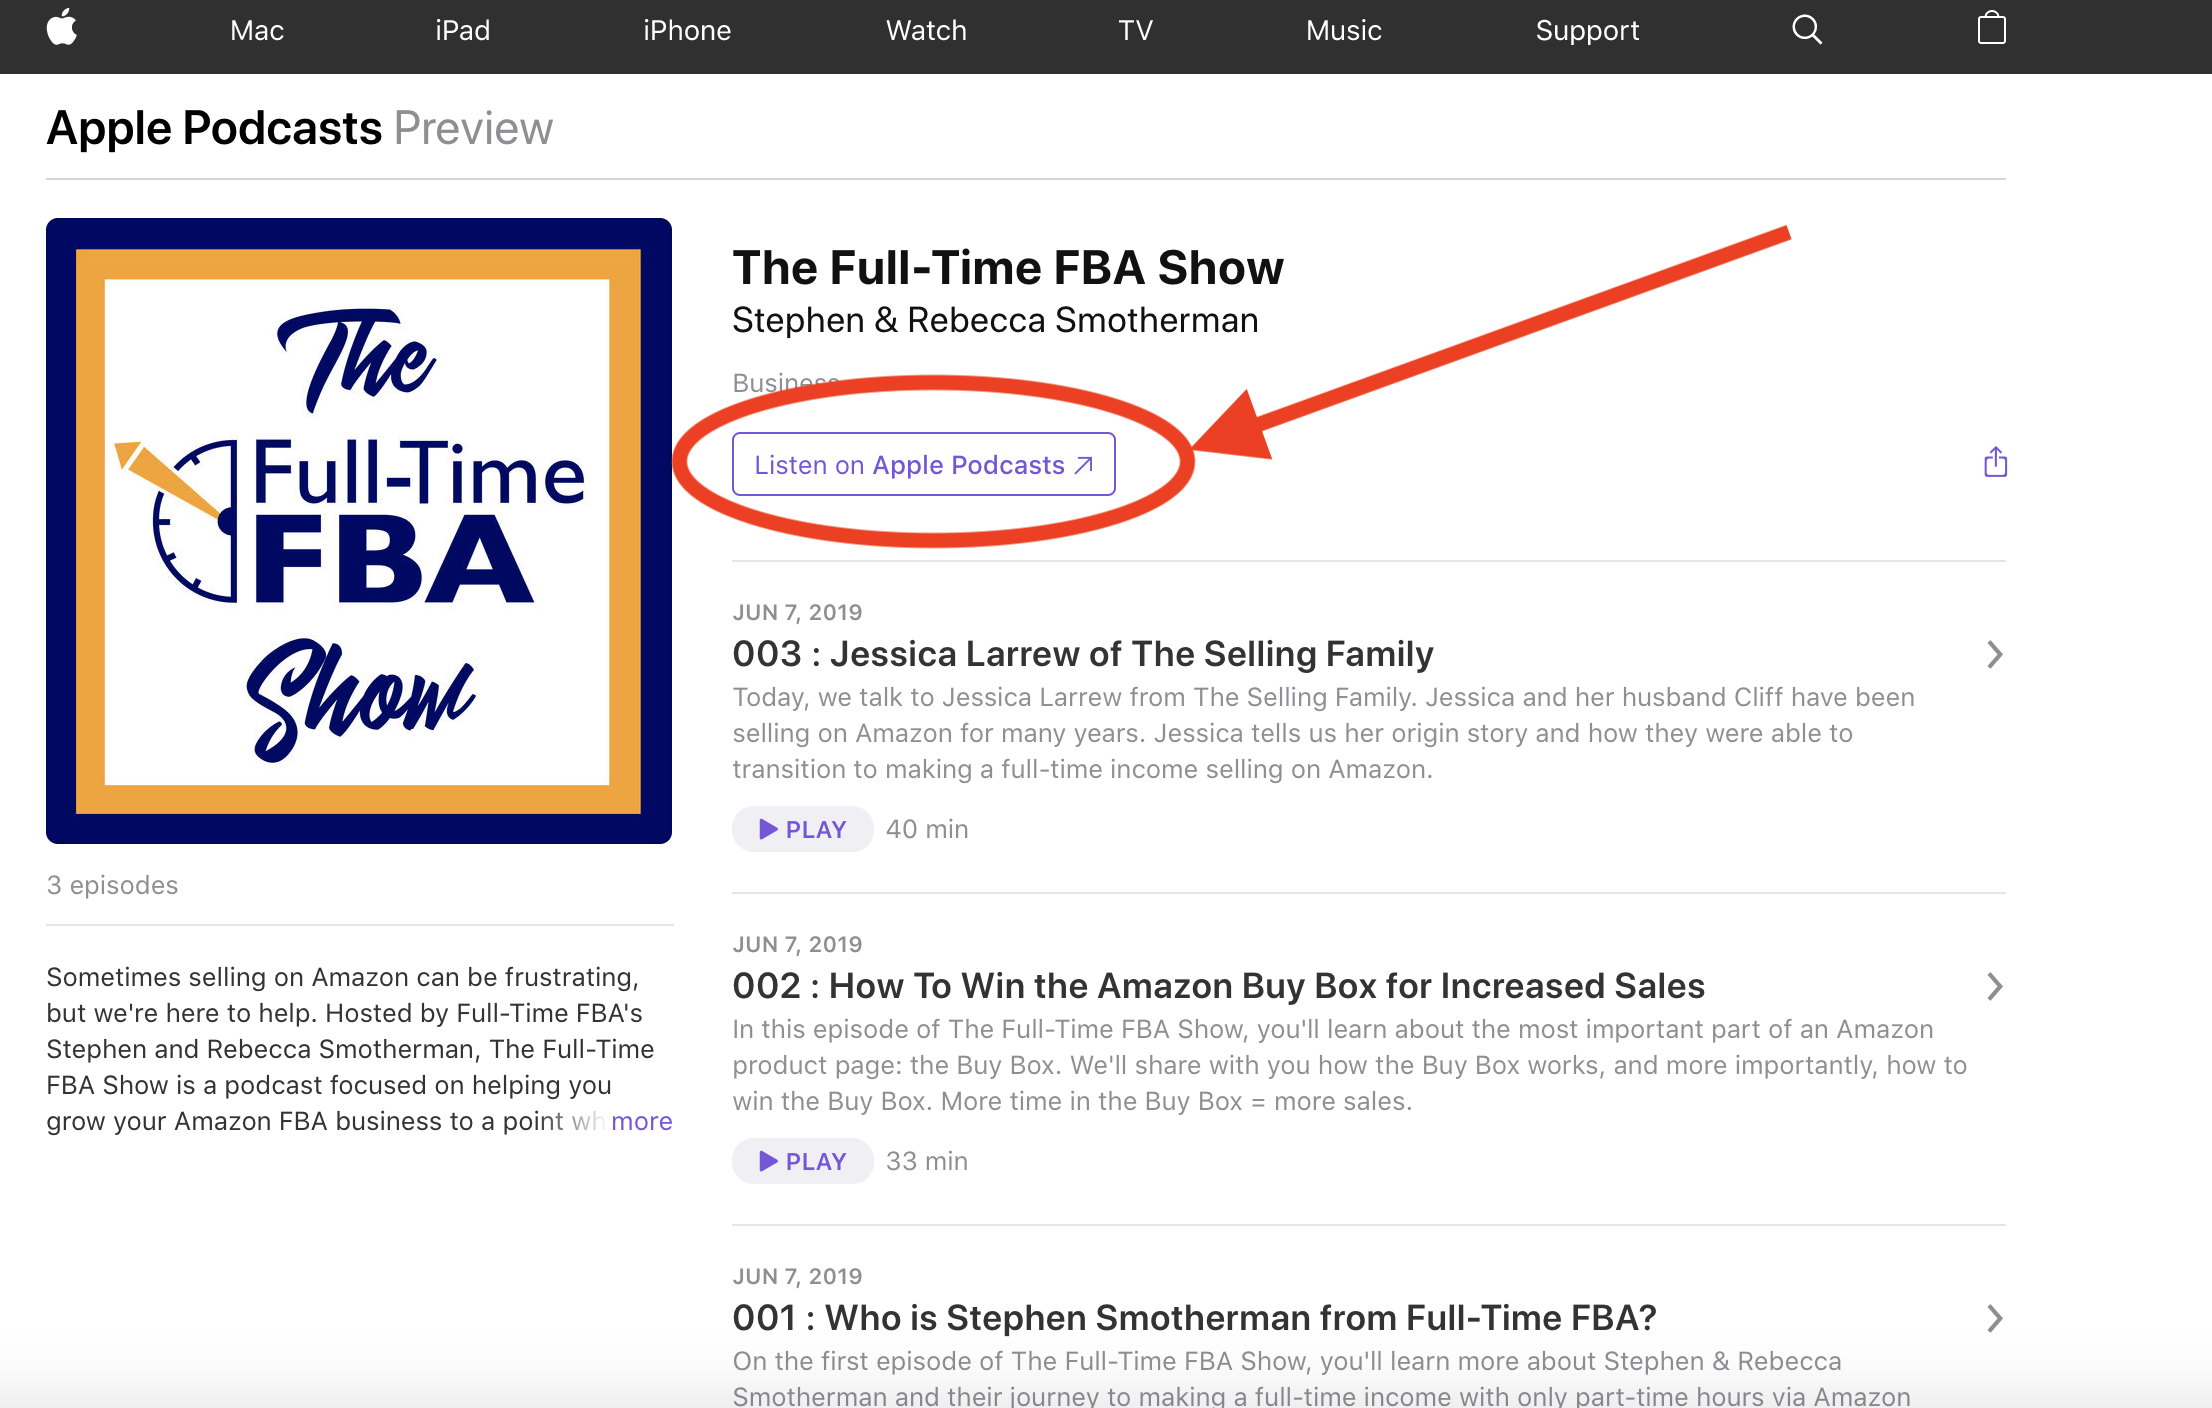 Subscribe, Download and Leave a Review for The Full-Time FBA Show